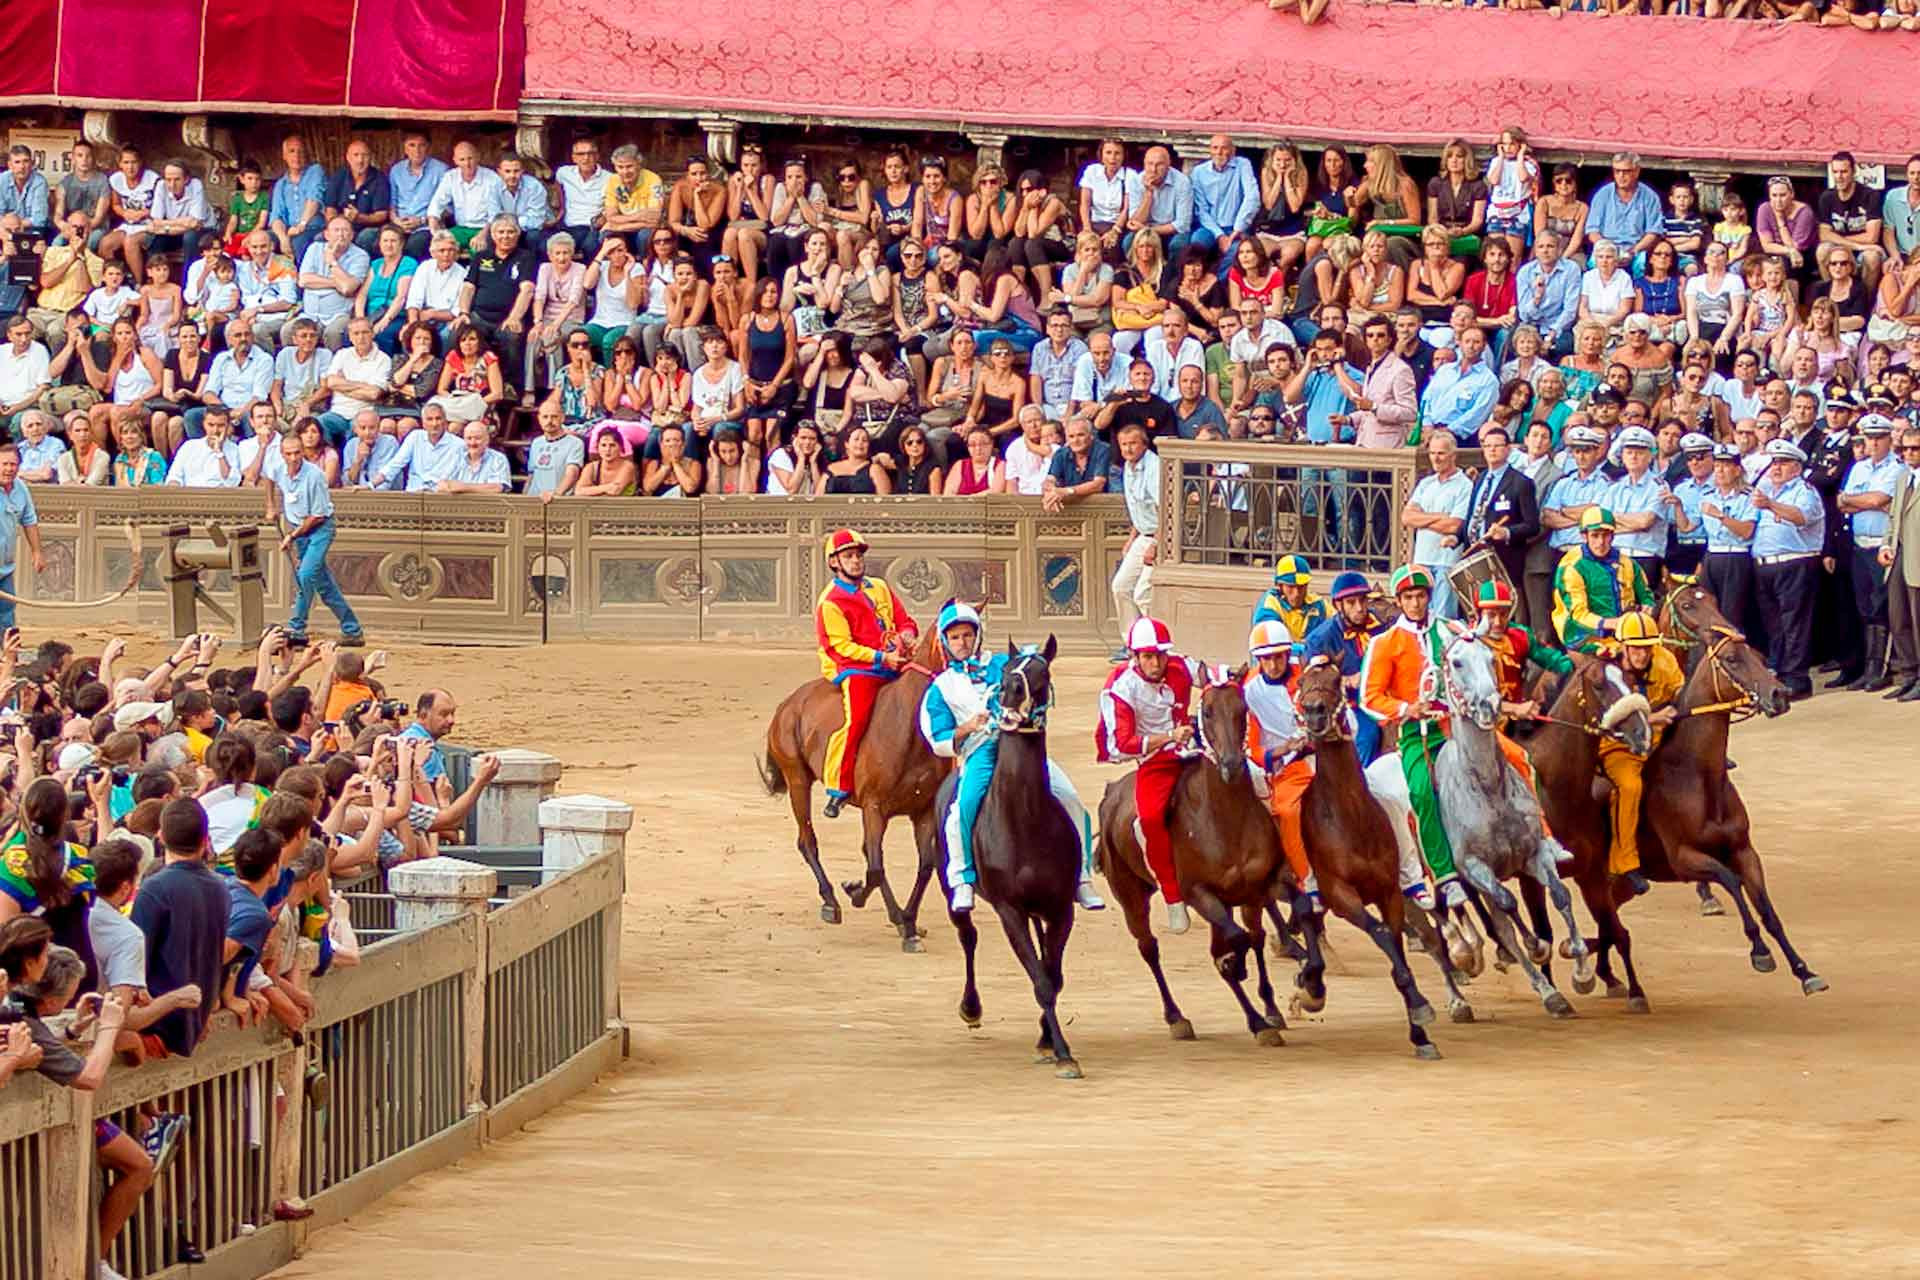 THE FIRST TEST ? The tests are held with the same rules and procedures as the Palio. However, it is not a real race, as the result has no value: the aim is to allow horses and jockeys to adapt to the track and the situation in view of the Palio.